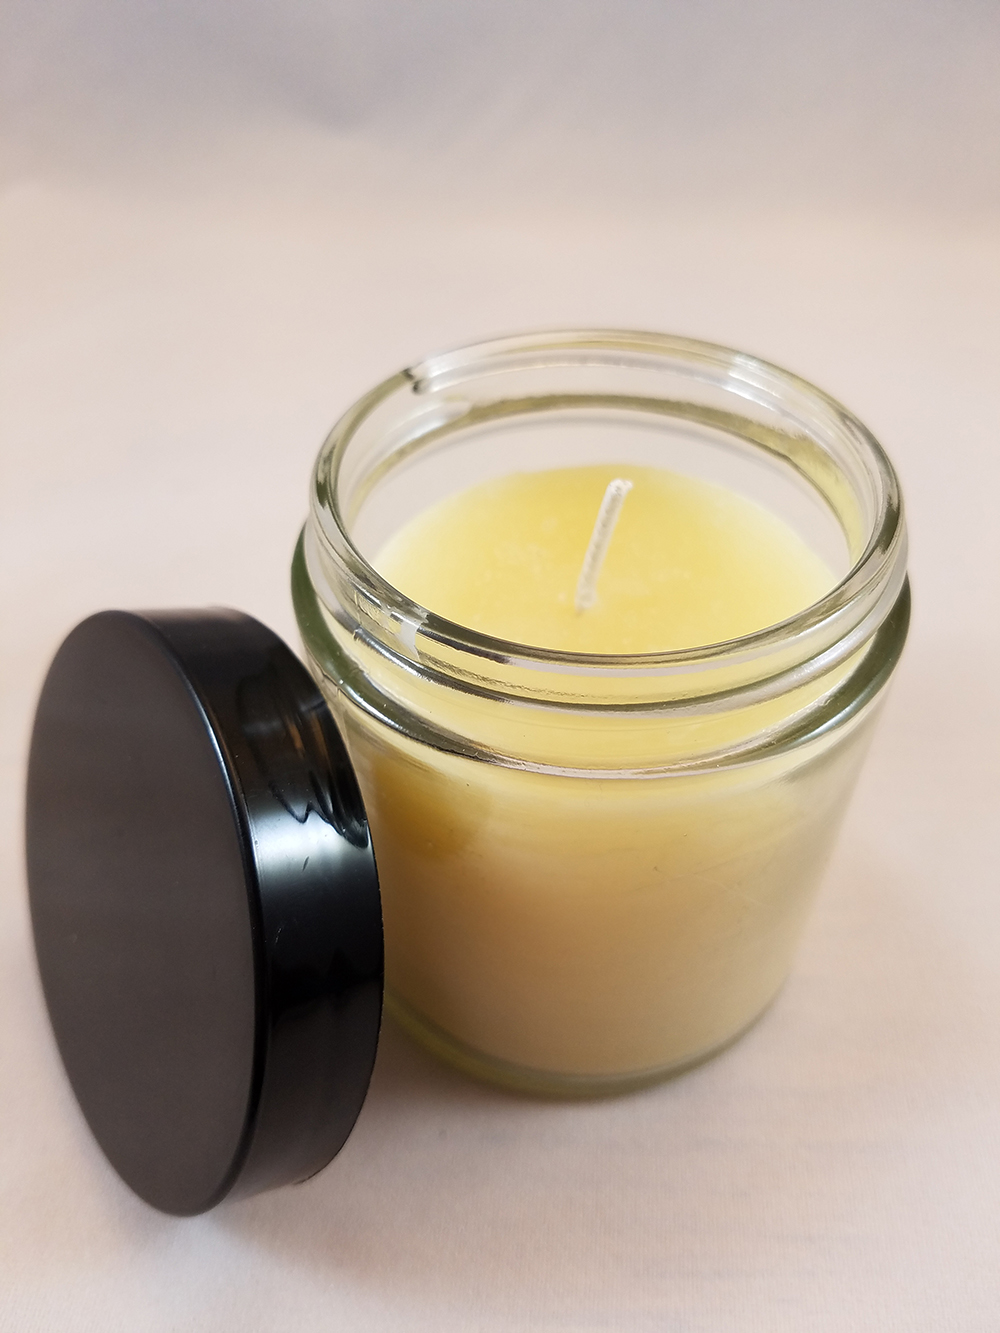 Beeswax Travel Candle - SOON